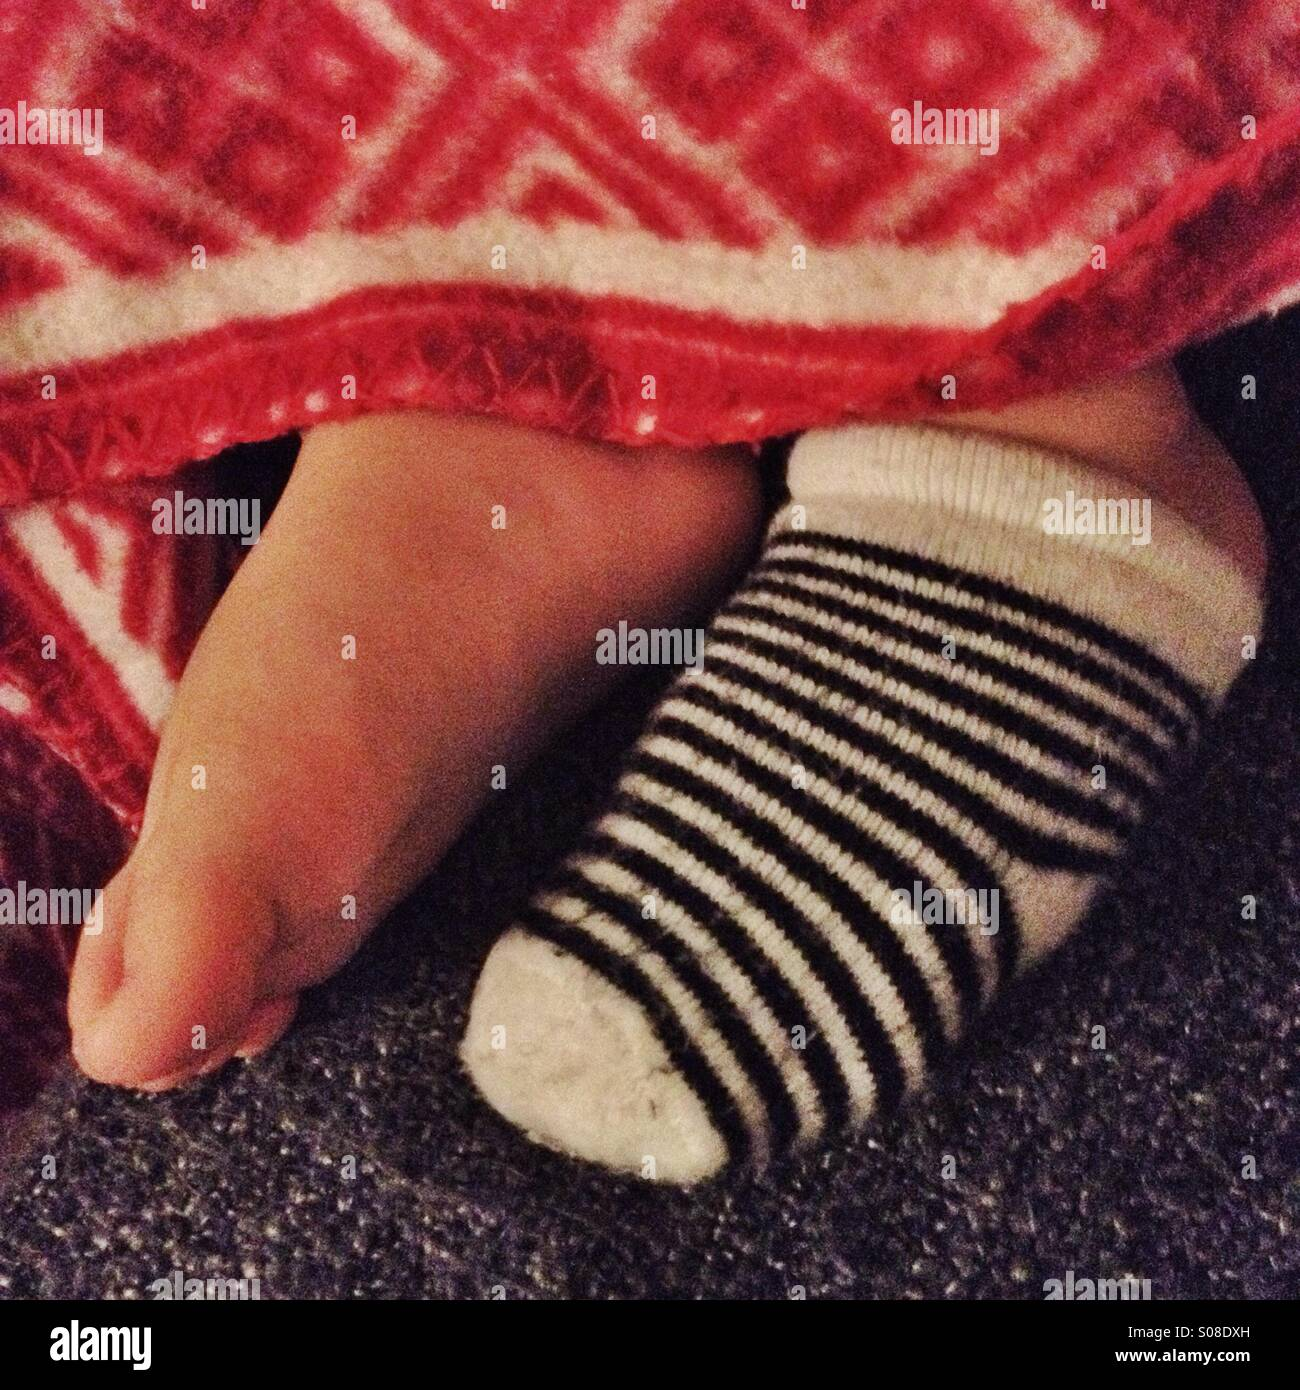 Child's feet sticking out of red blanket with one stripy sock on one foot and the other foot bare. - Stock Image